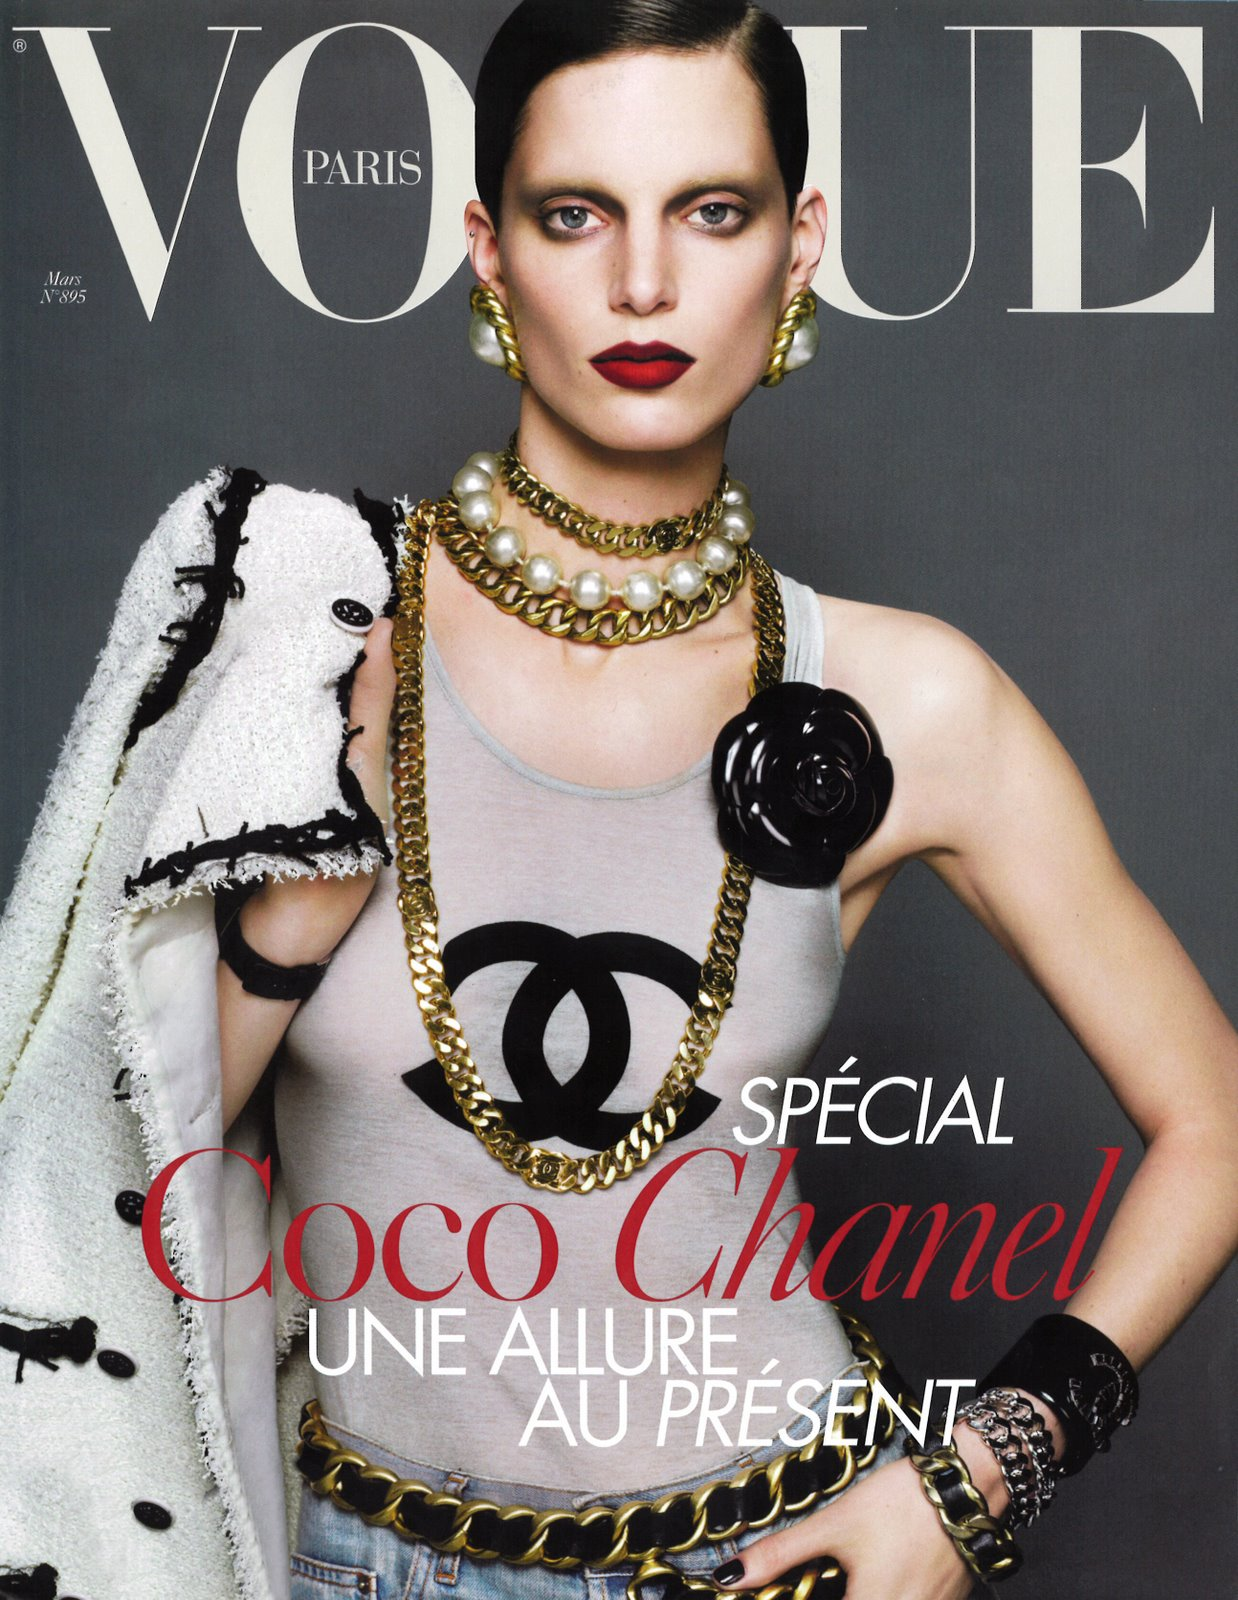 chanel coco vogue covers paris magazines french magazine elegance models editorial face les speak channel devoted mademoiselle boyish goddess retro